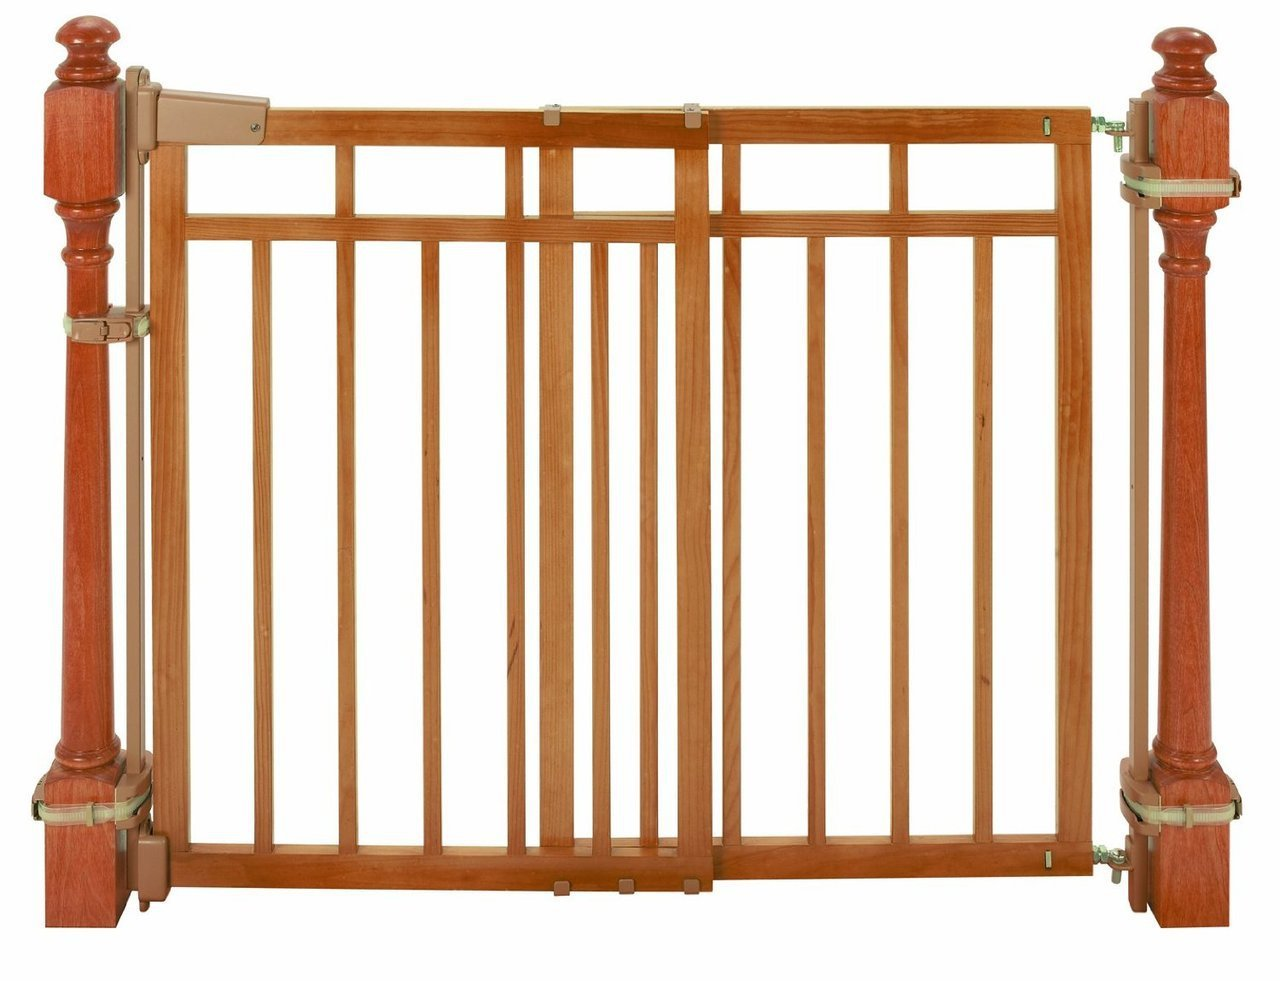 Amazon.com : Summer Infant Stylishu0026secure® Deluxe Top Of Stairs Gate With  Dual Banister Kit : Indoor Safety Gates : Baby